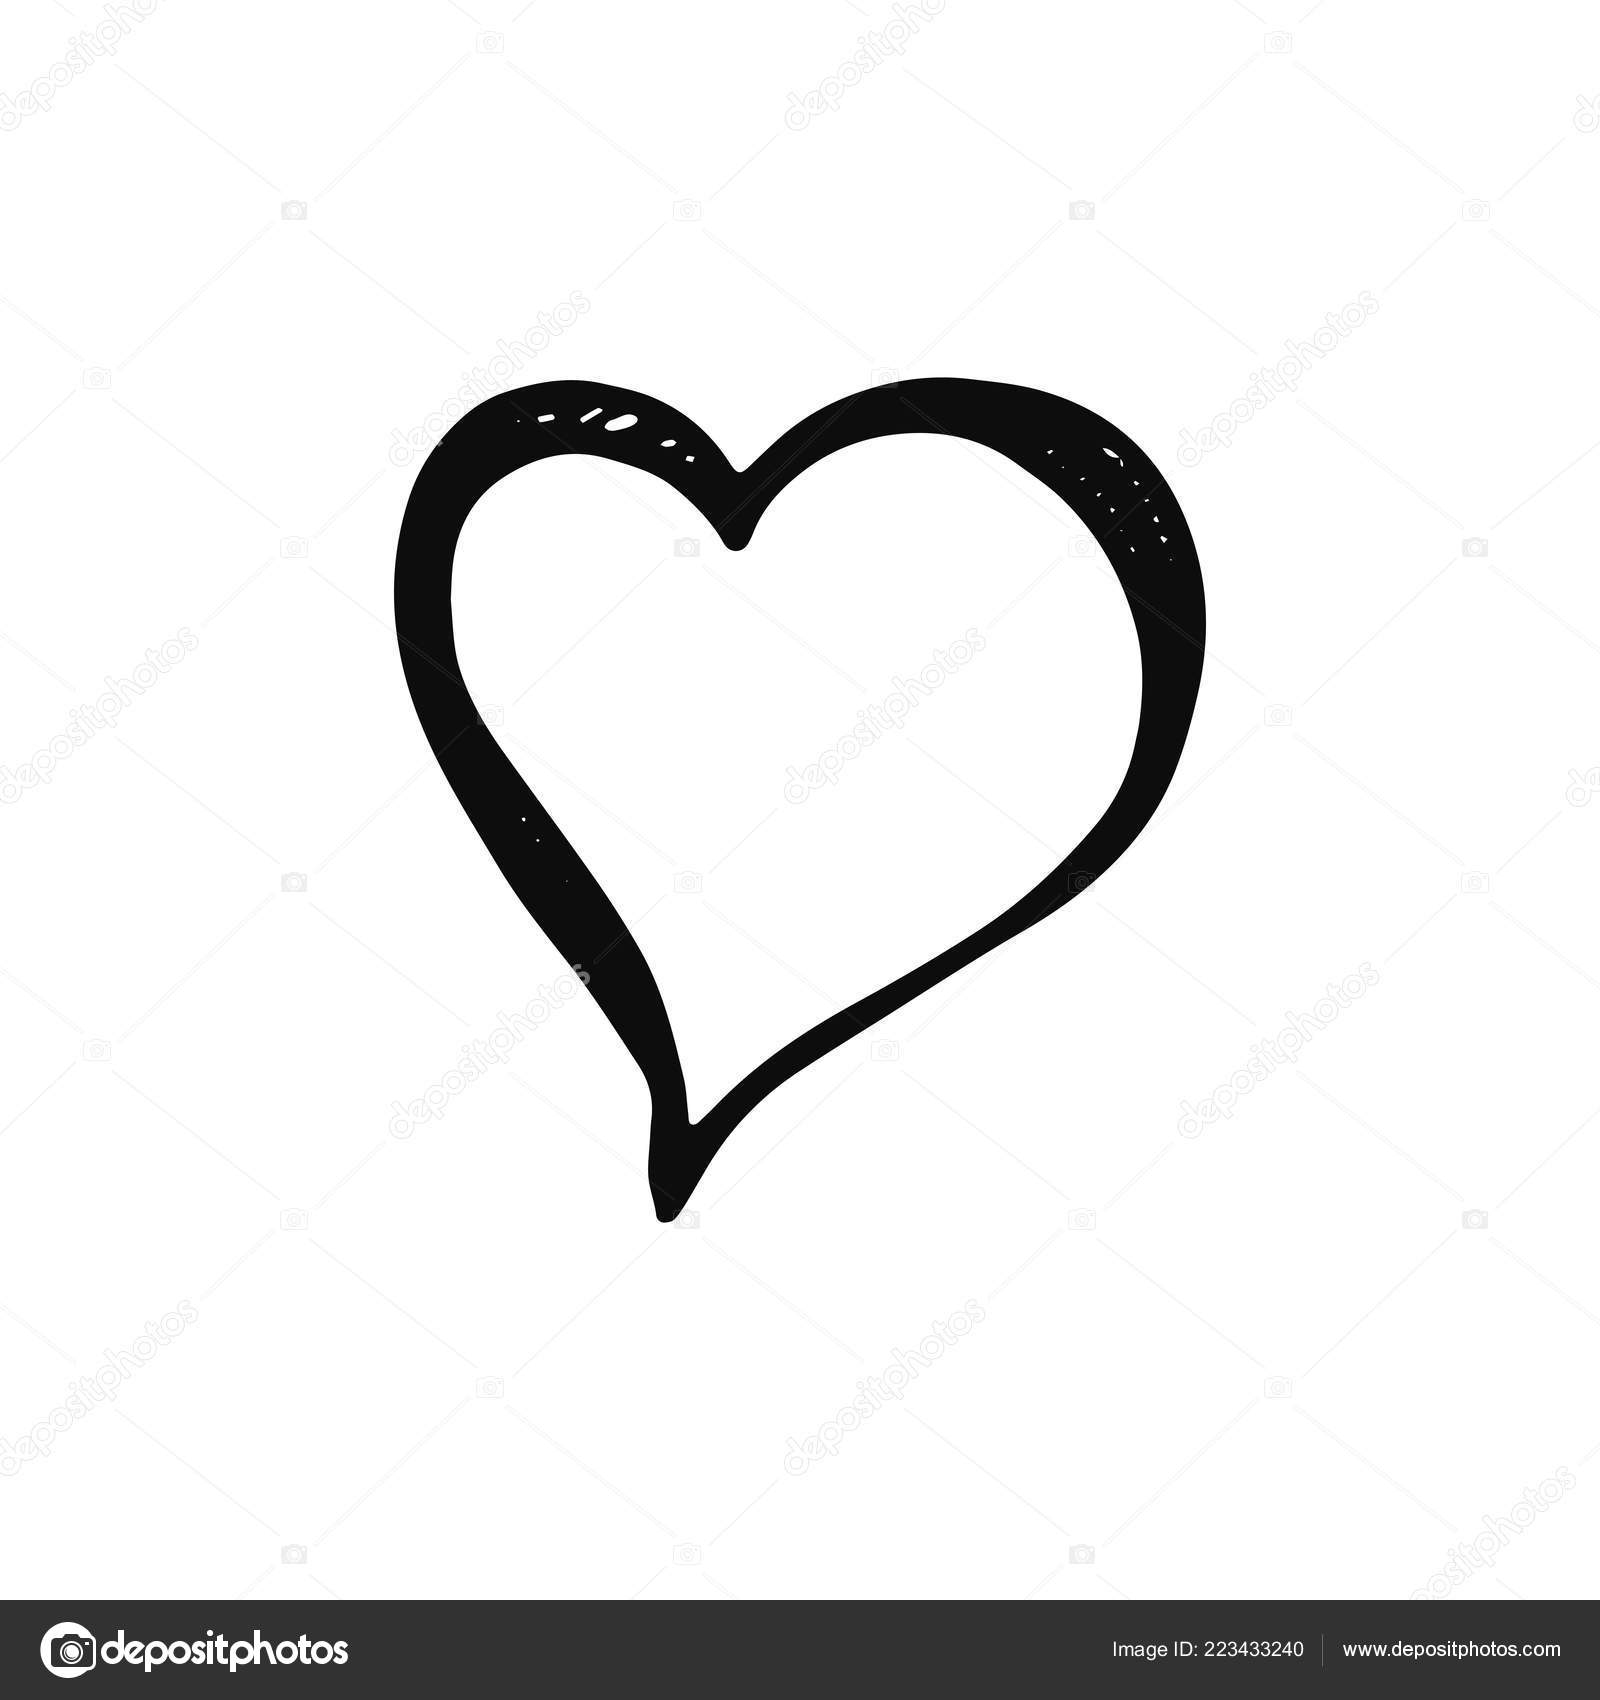 Heart icon isolated object sketch black white background